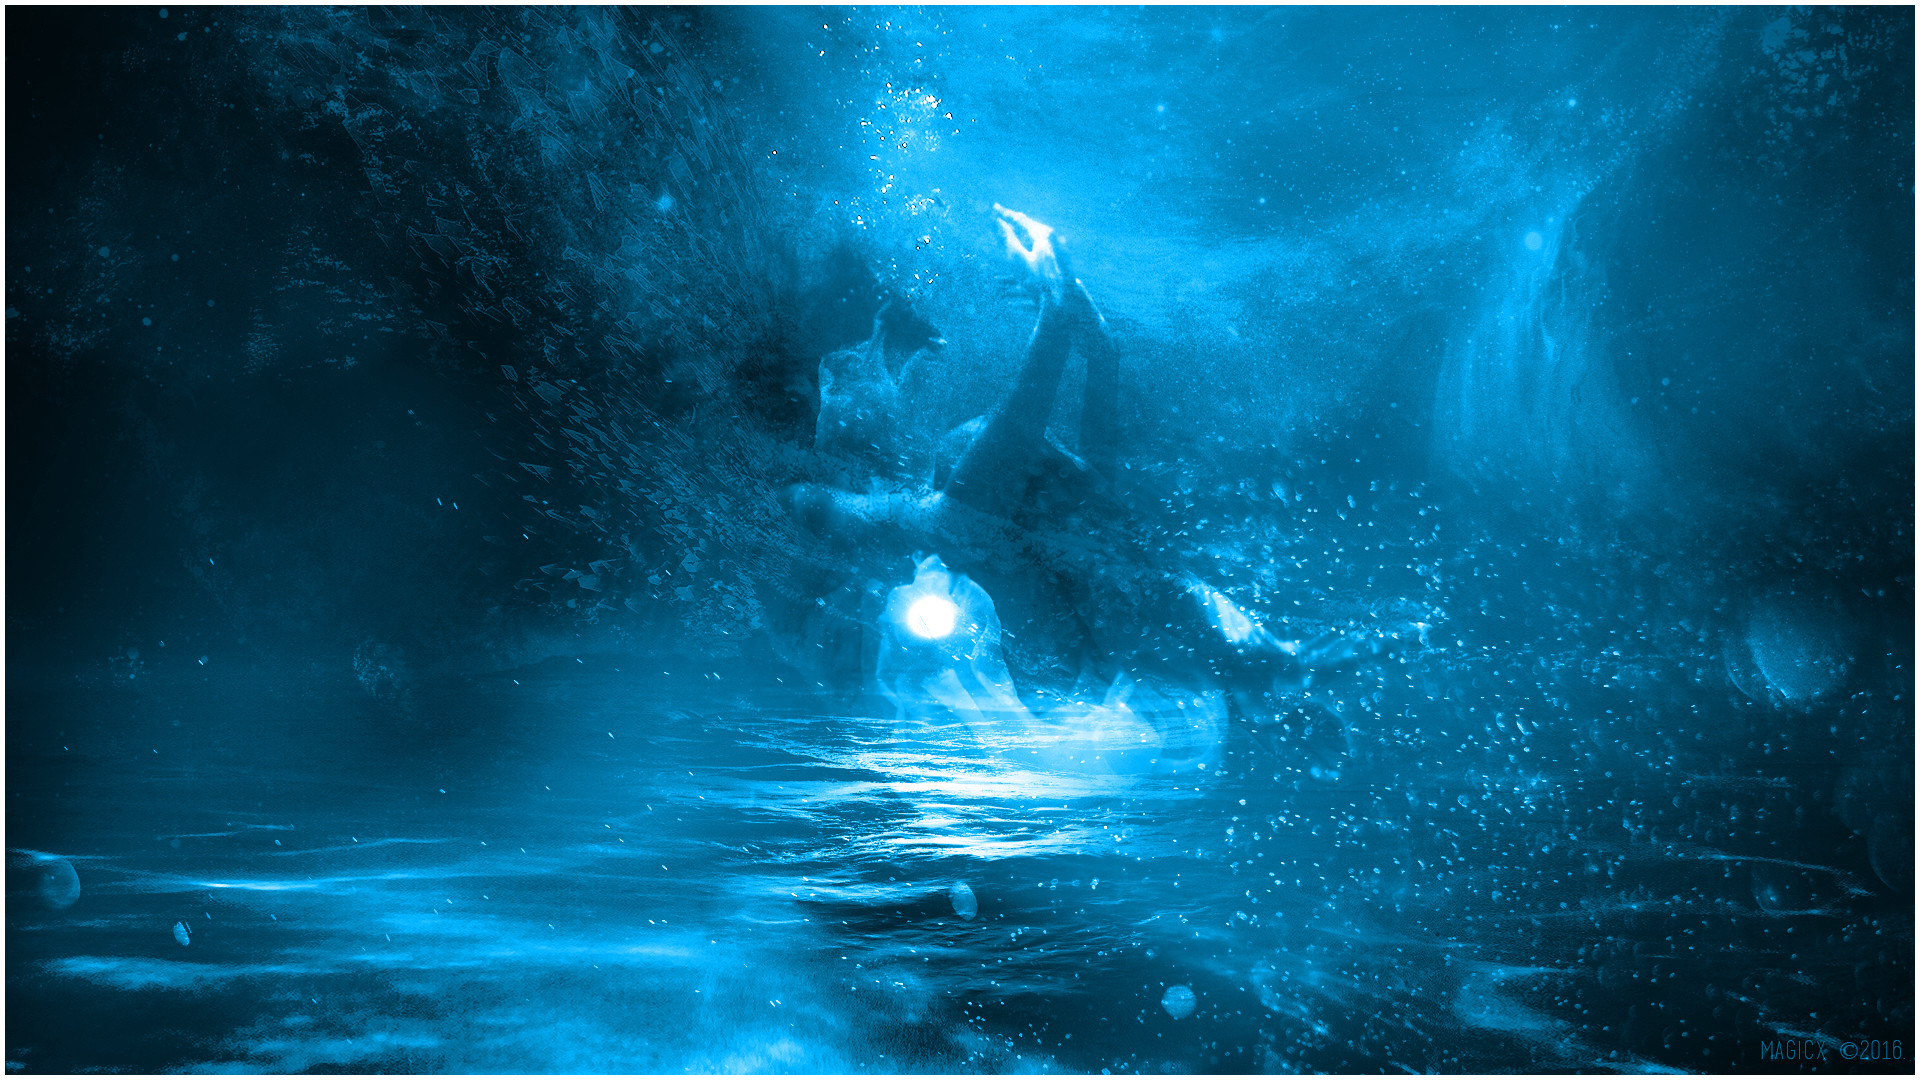 … Drowning in Blue (Wallpaper – 1080p) by MagicXB